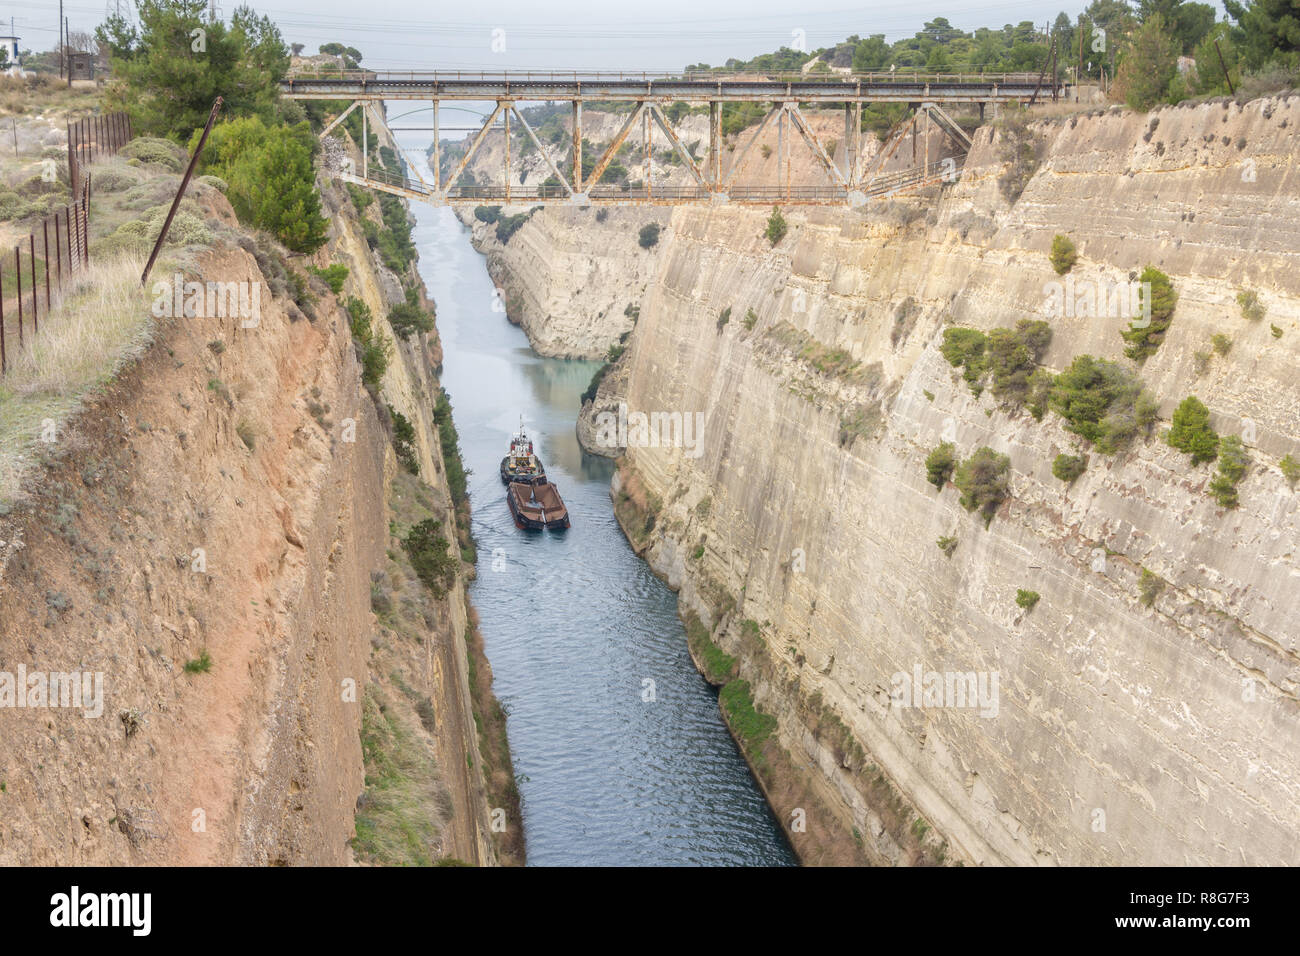 Boat crossing the Corinth channel in Peloponnese Greece Stock Photo